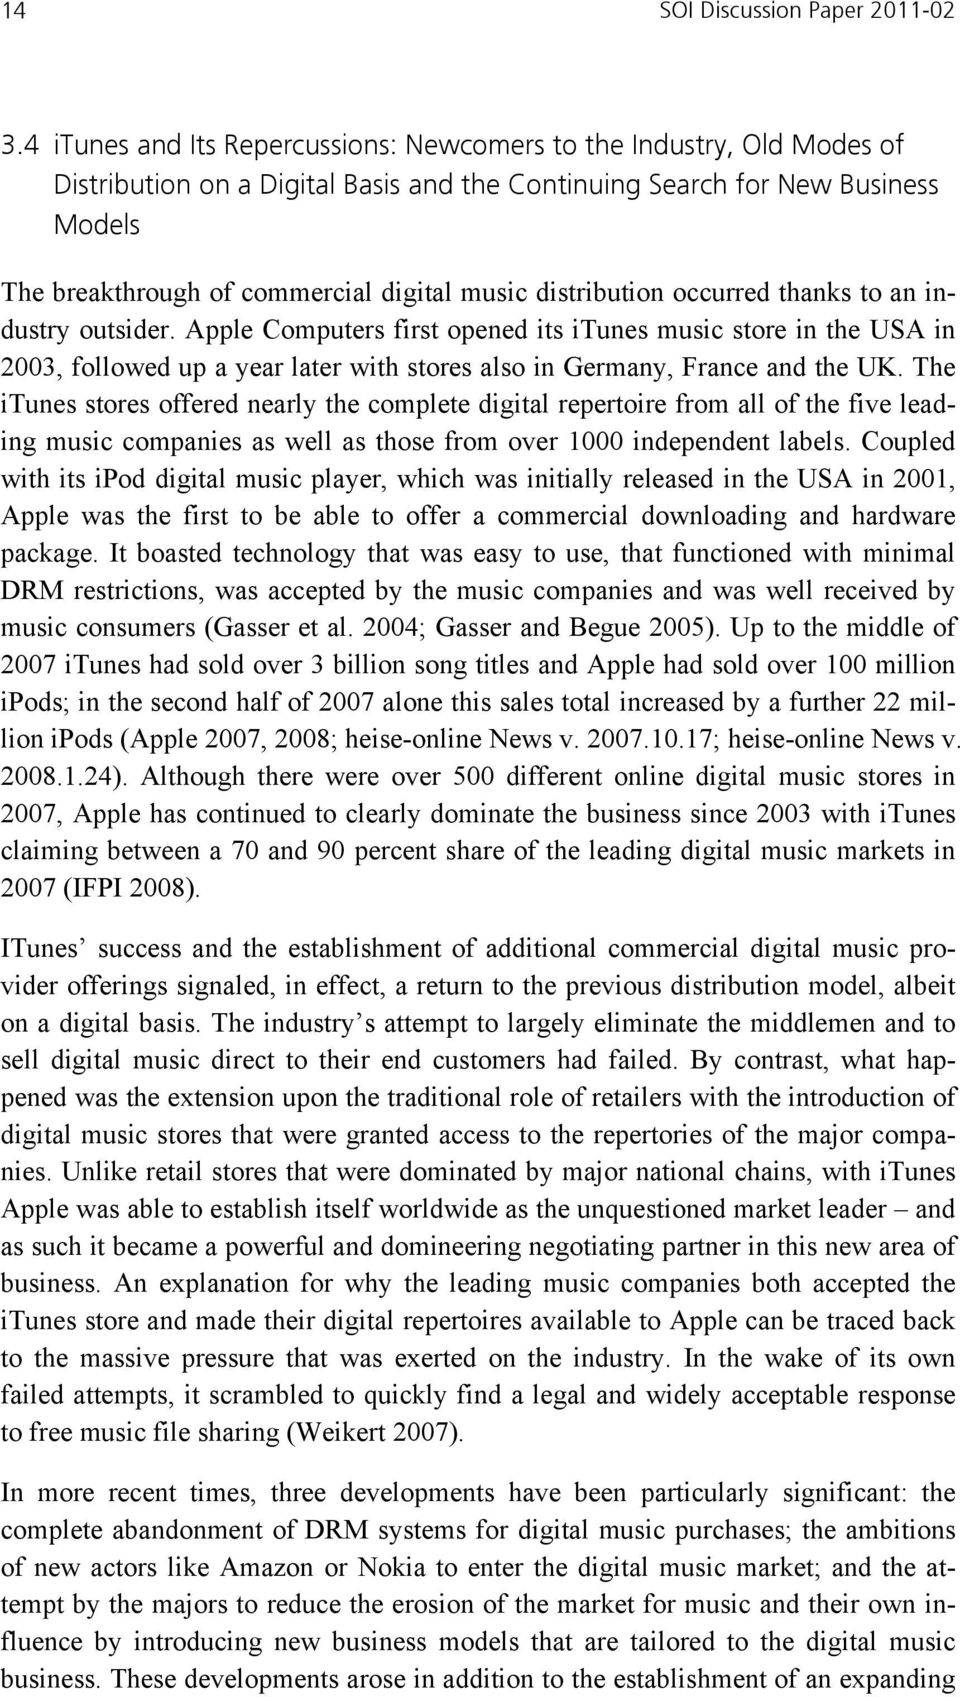 distribution occurred thanks to an industry outsider. Apple Computers first opened its itunes music store in the USA in 2003, followed up a year later with stores also in Germany, France and the UK.